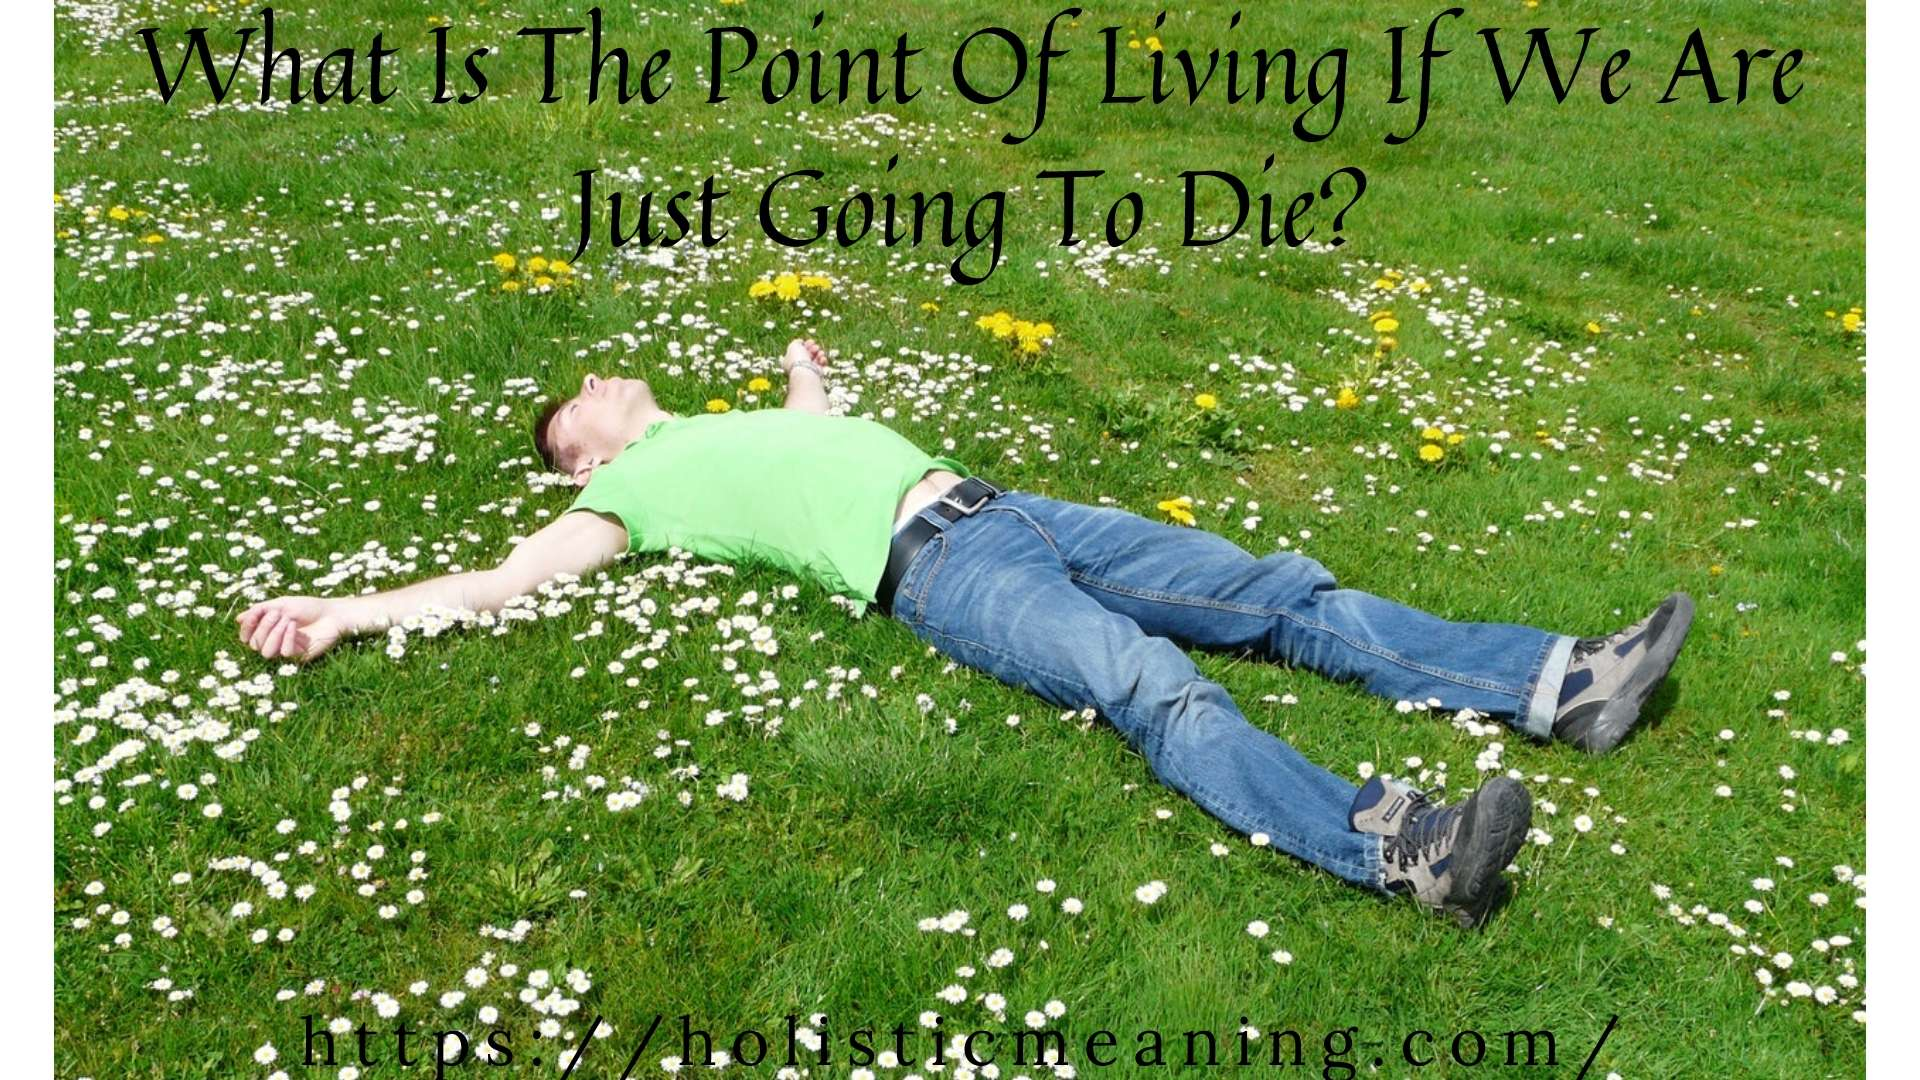 What Is The Point Of Living If We Are Just Going To Die